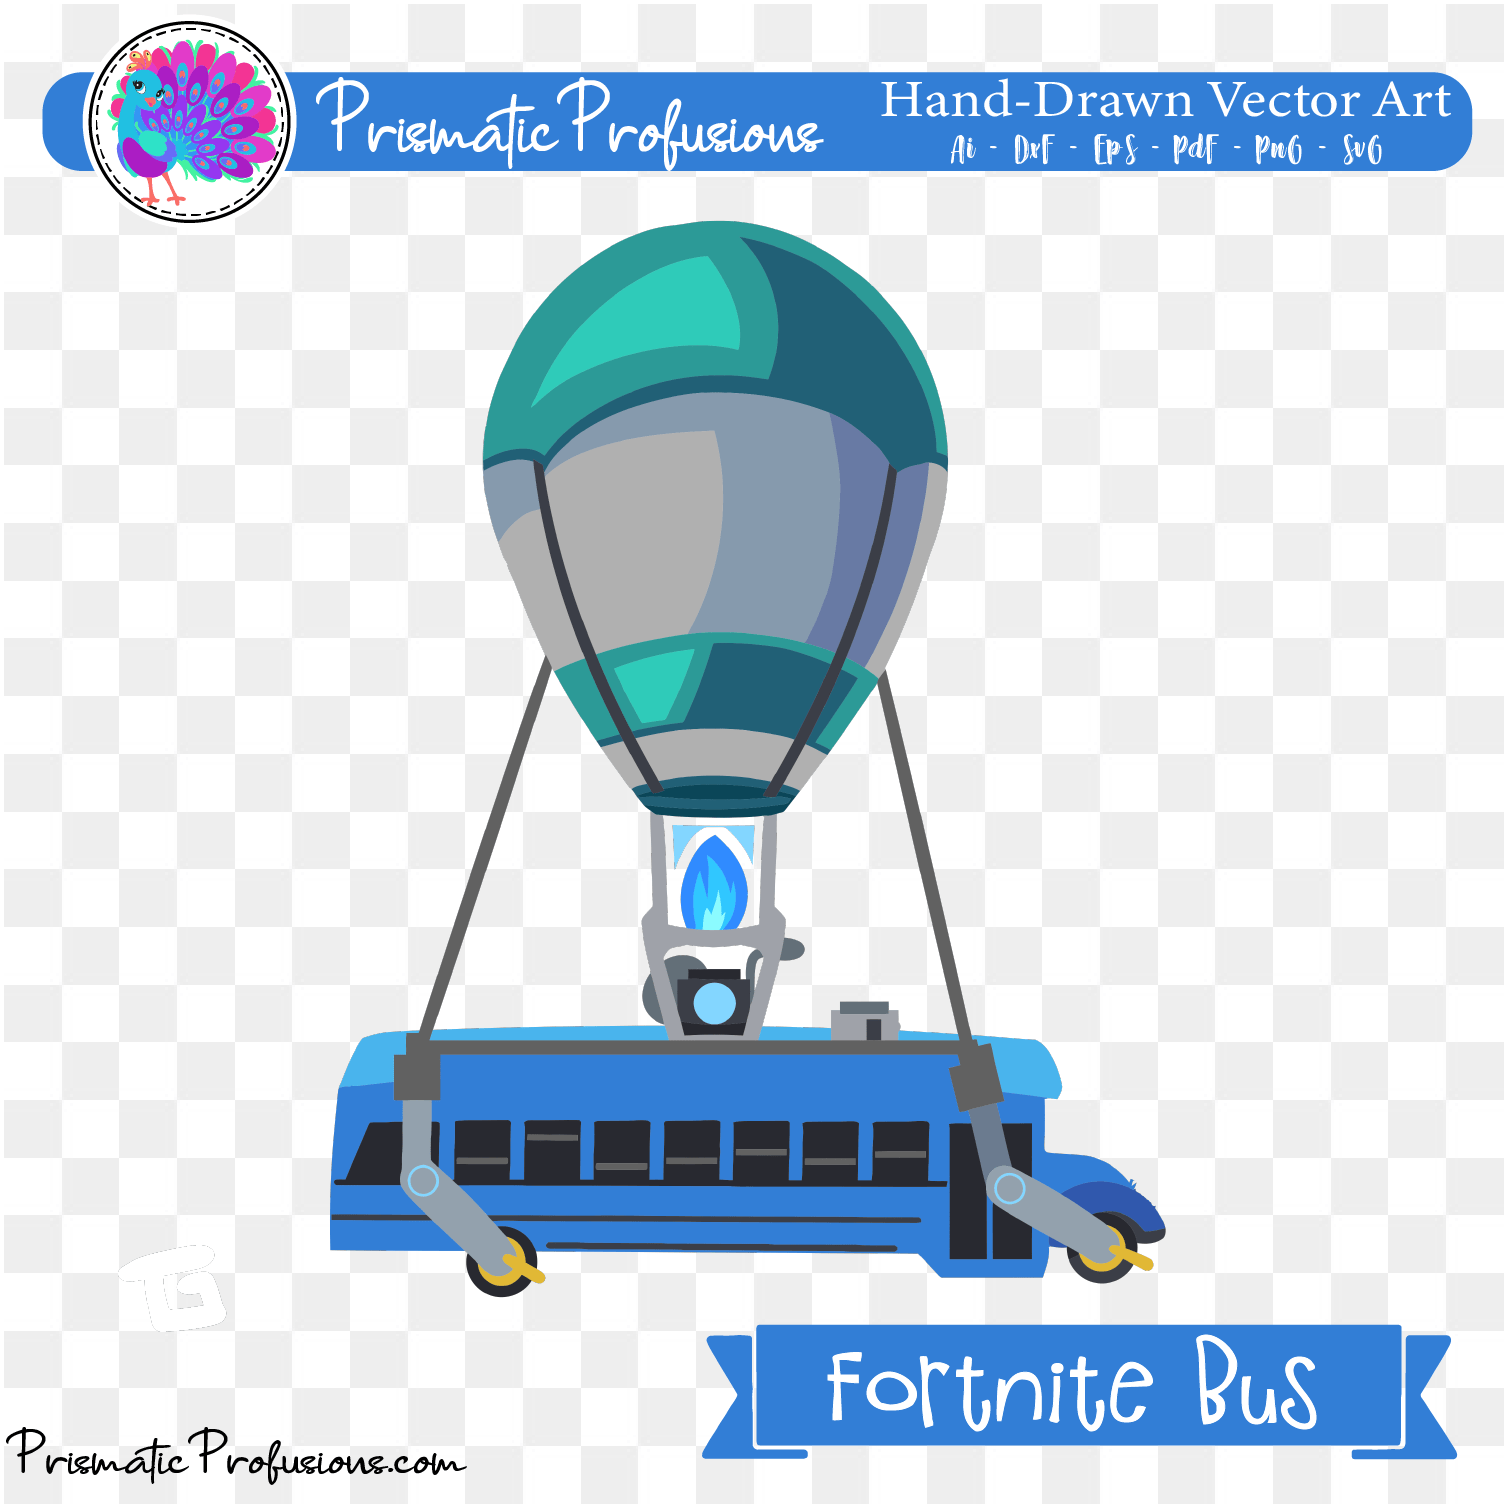 Fortnite Bus, Fortnite Bus SVG, Fortnite Bus Clipart.